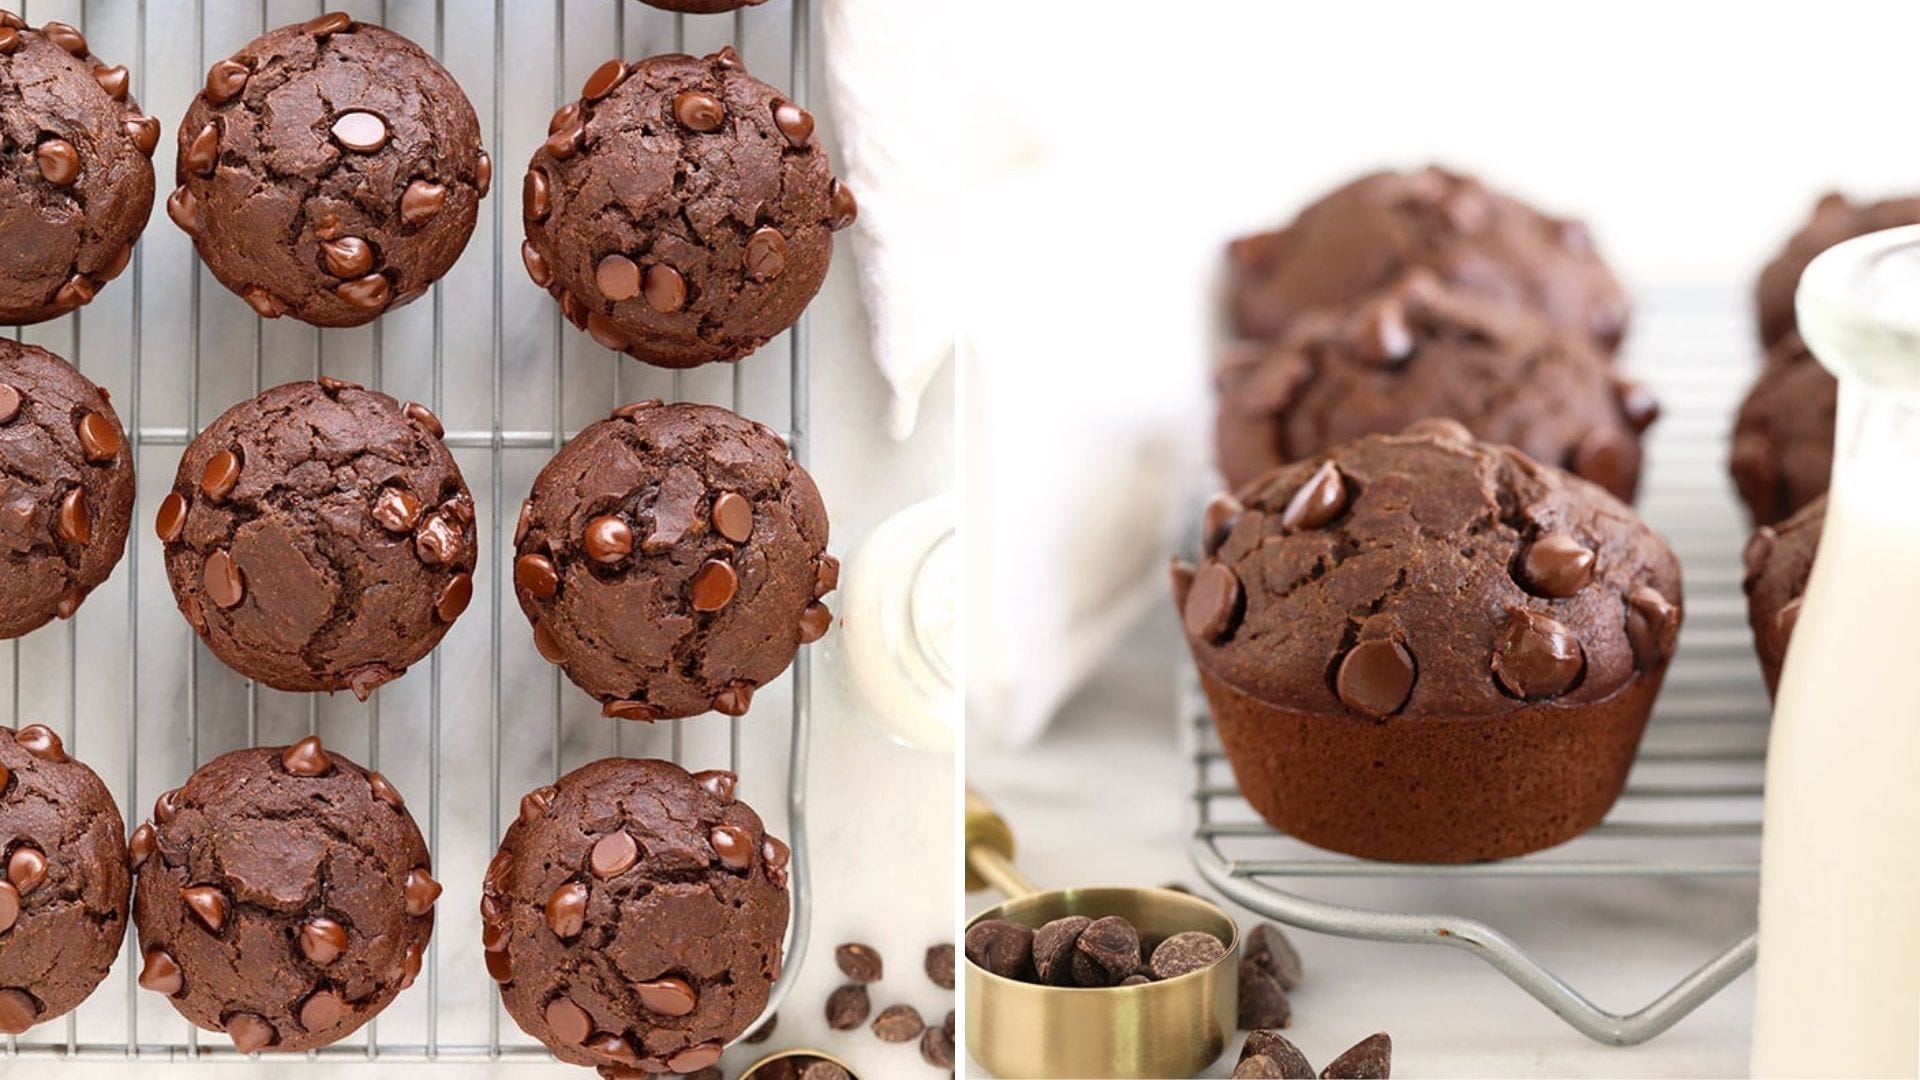 Several chocolate muffins